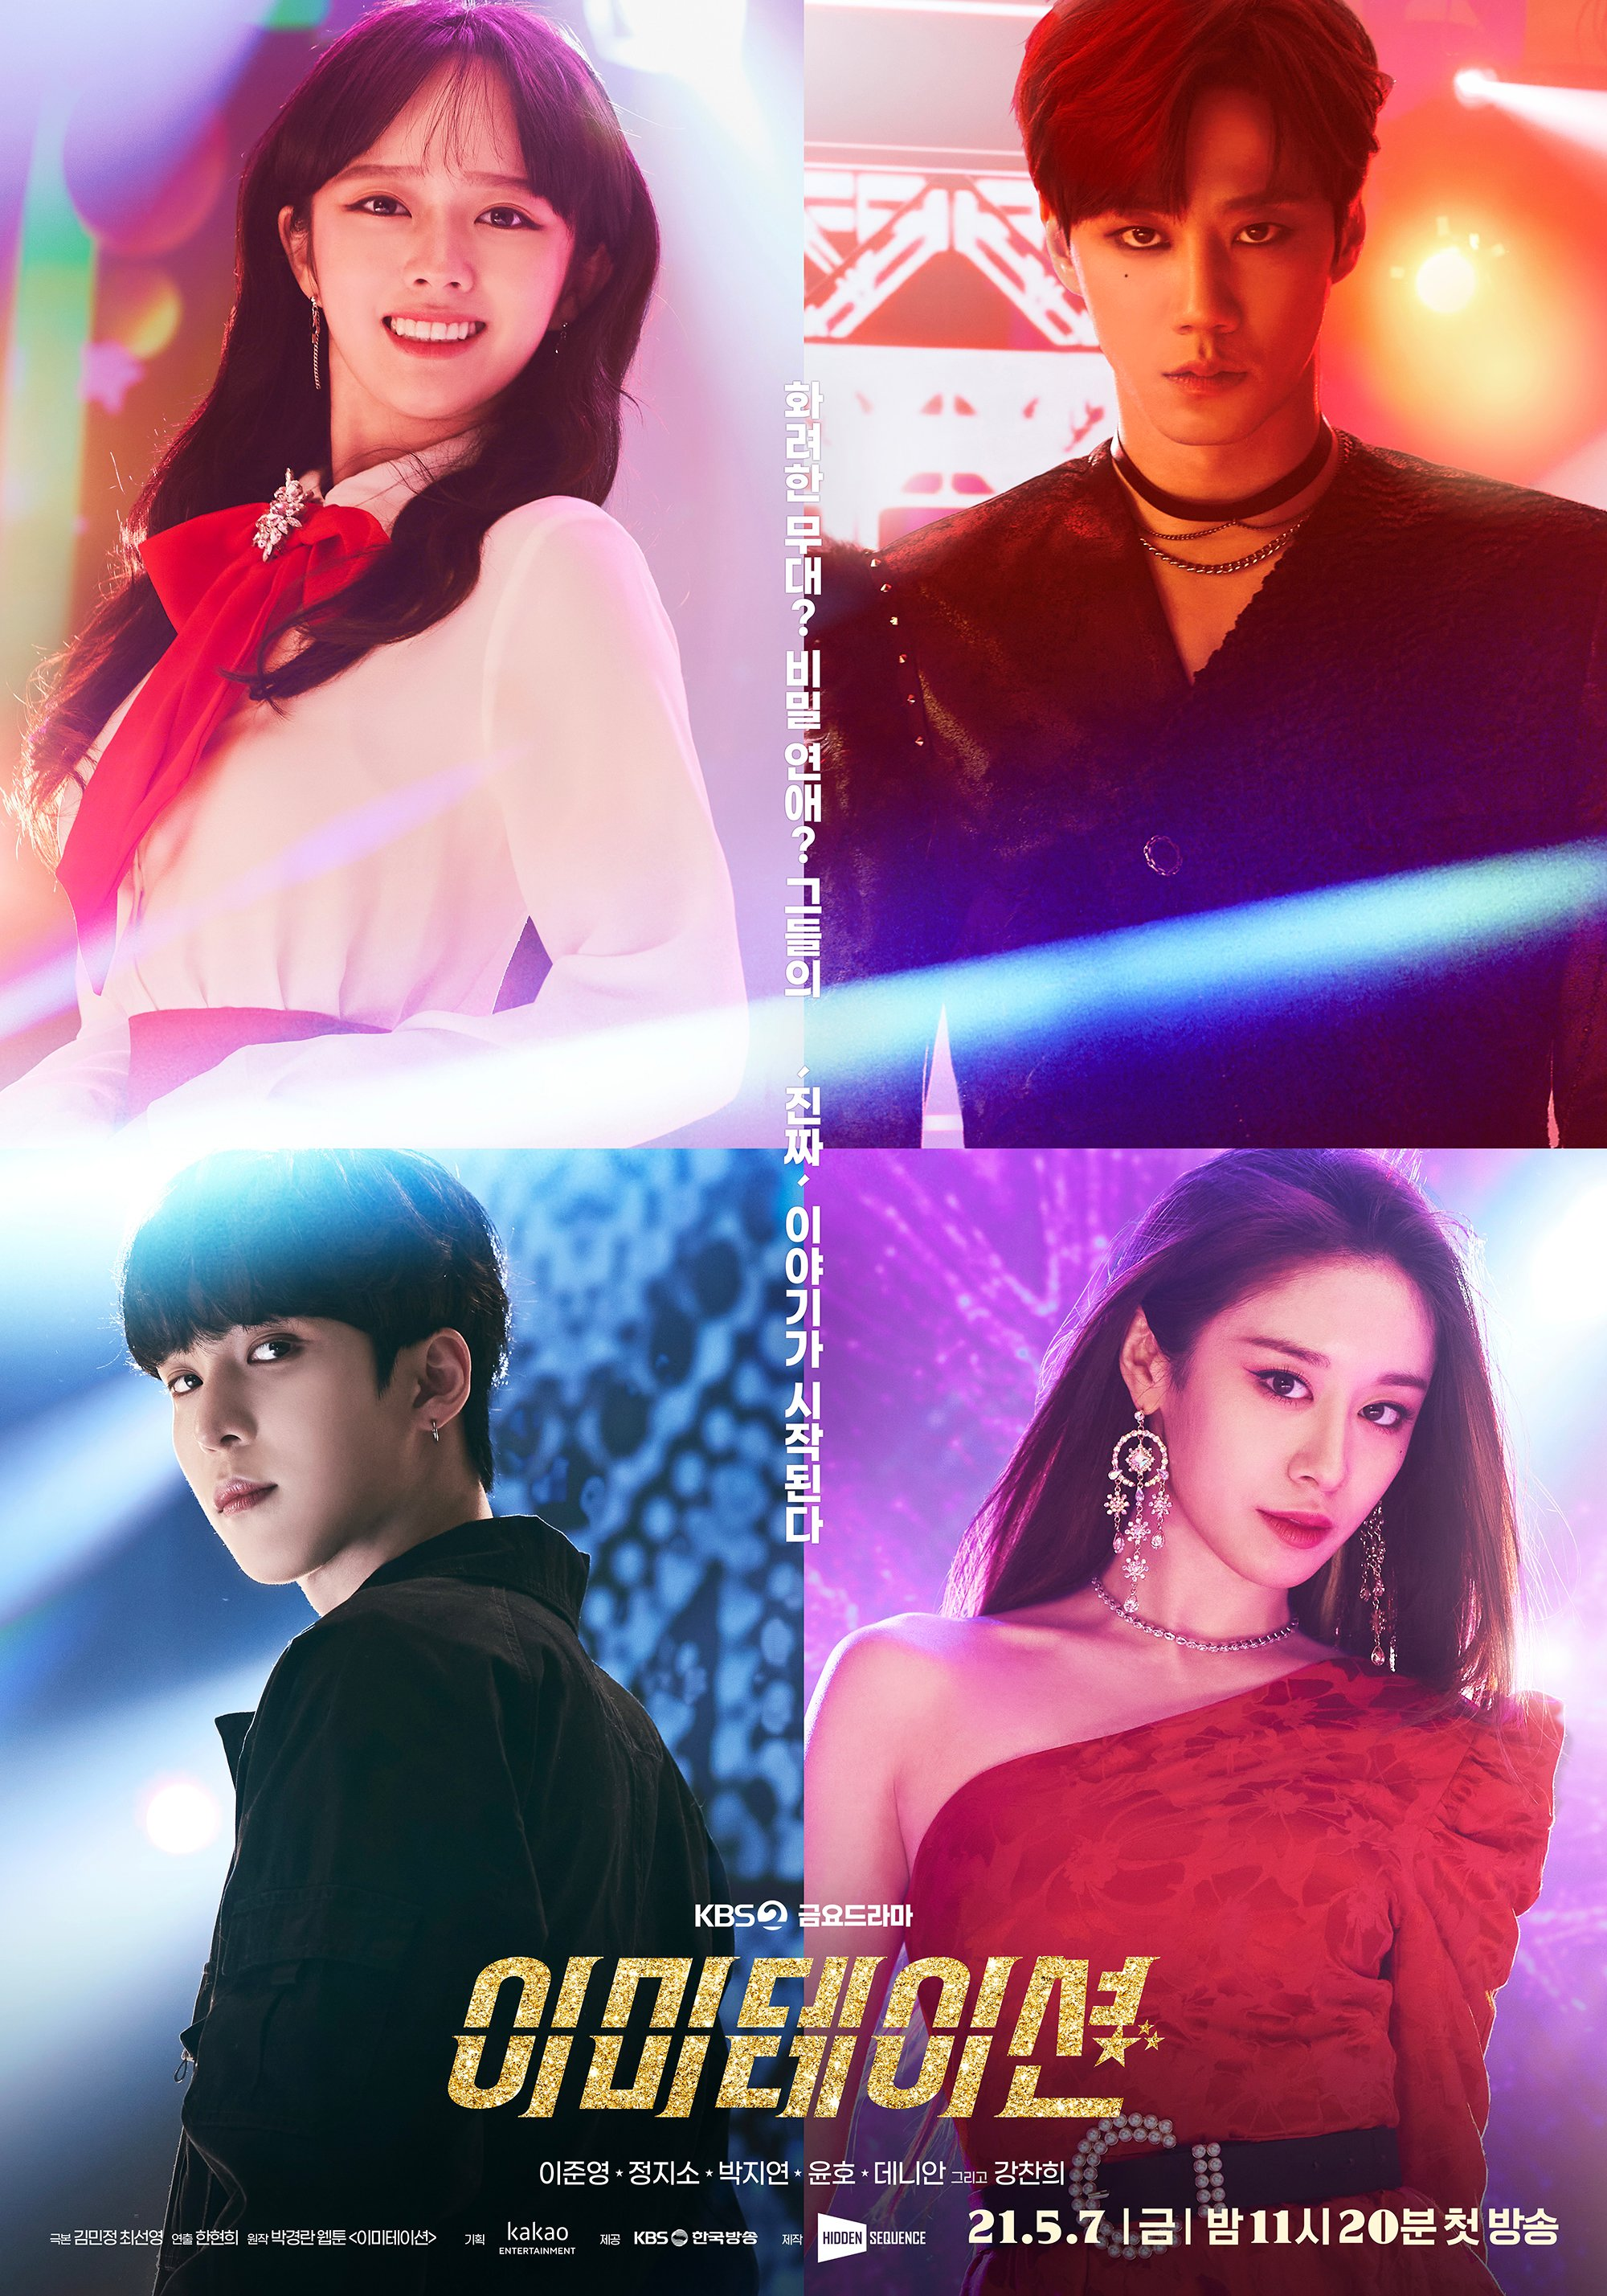 Based on the webtoon of the same name, it tells the story of the lives of idols in the entertainment industry, centered around the secret romance between a member of a rookie girl group and a member of the top boy group in the industry.